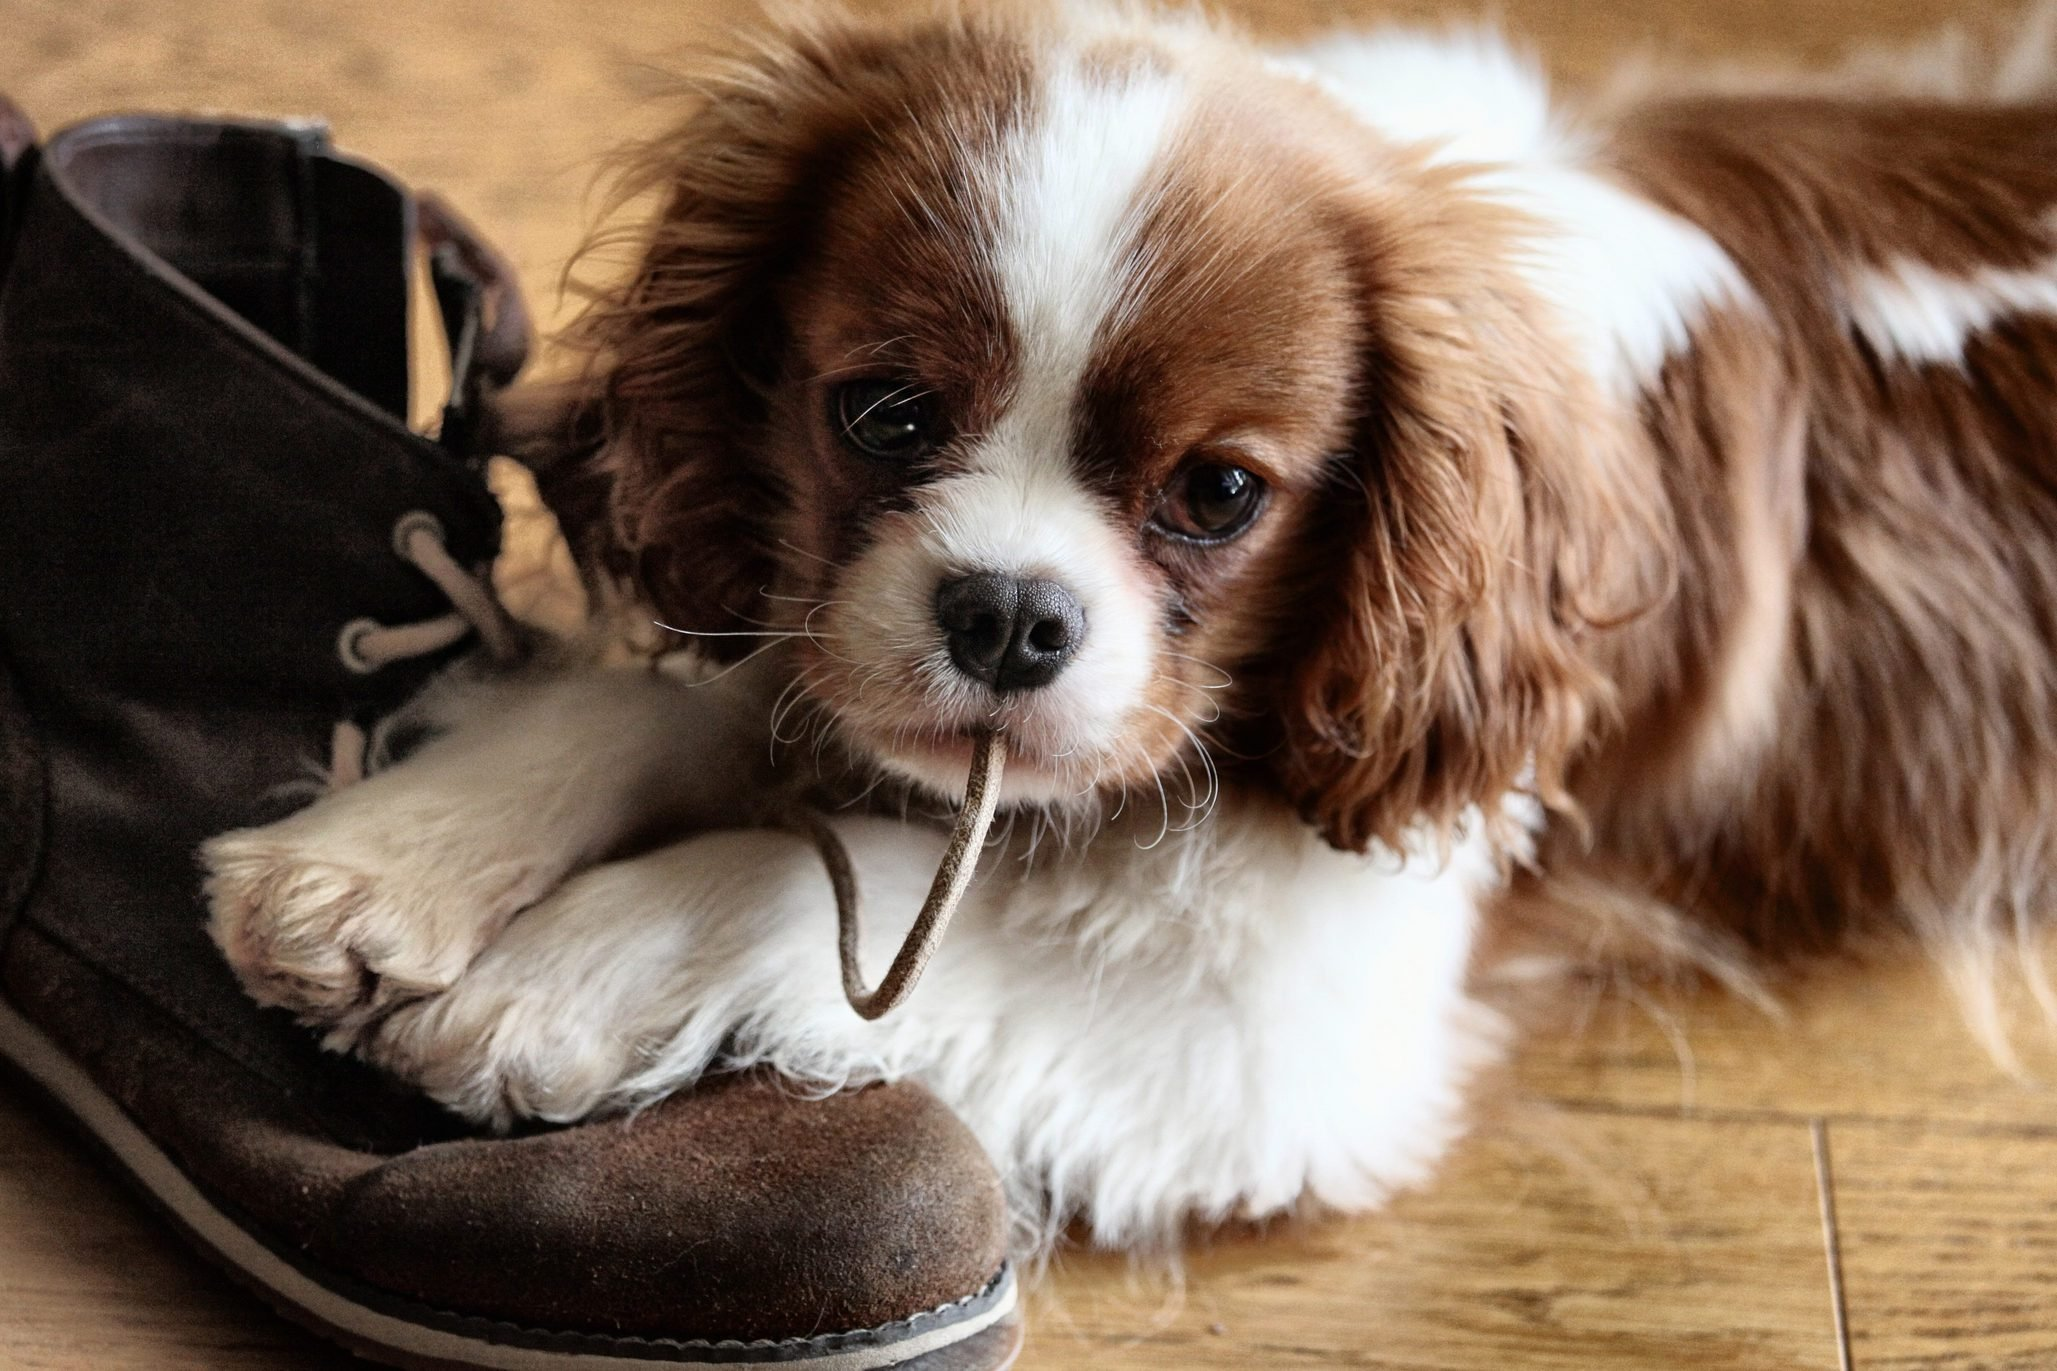 Close-Up Of Puppy Biting Shoelace